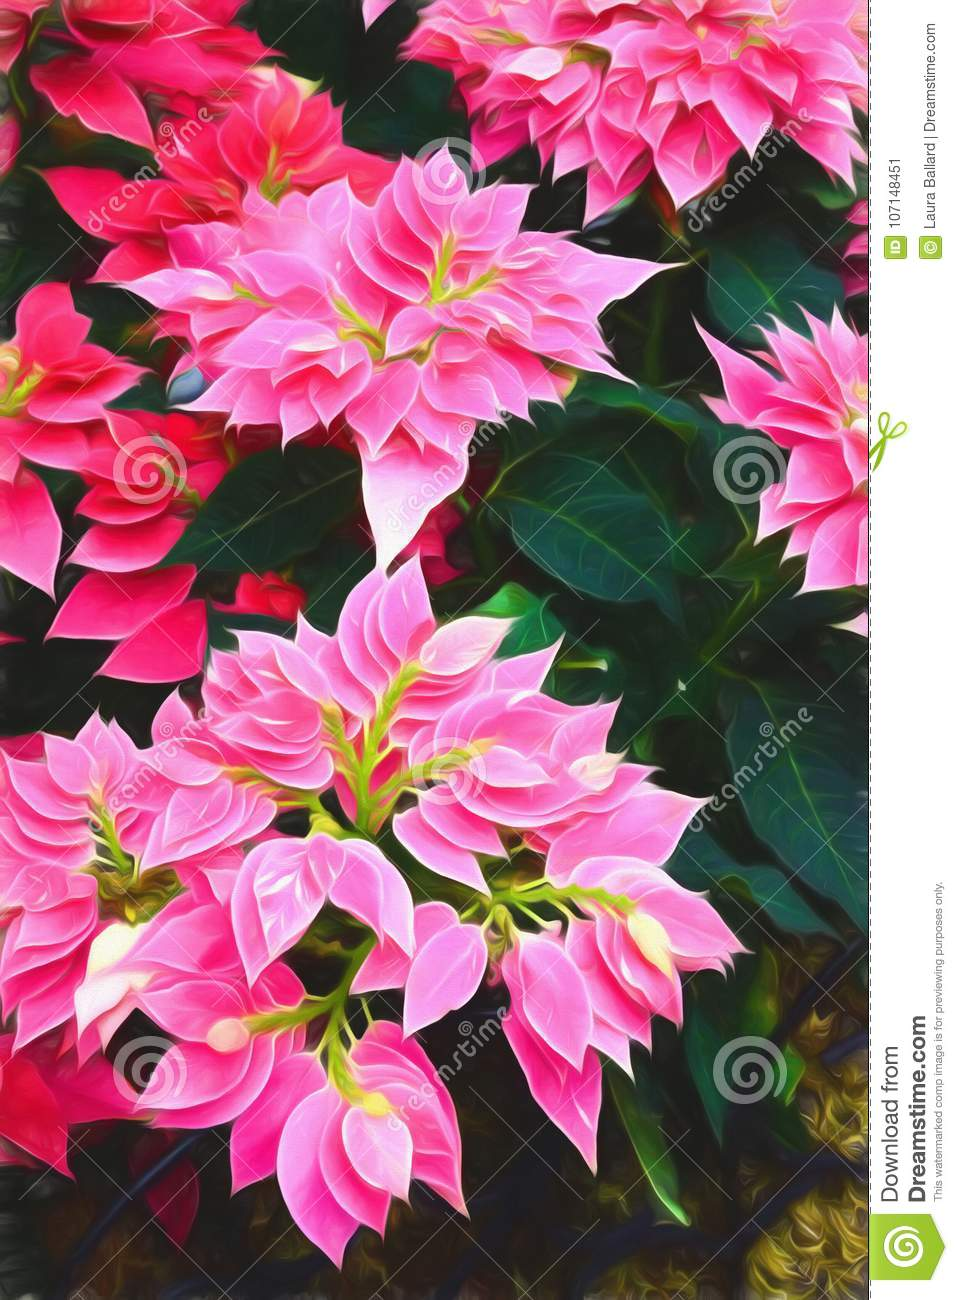 Pink And Red Colored Poinsettia Flowers Stock Image Image Of